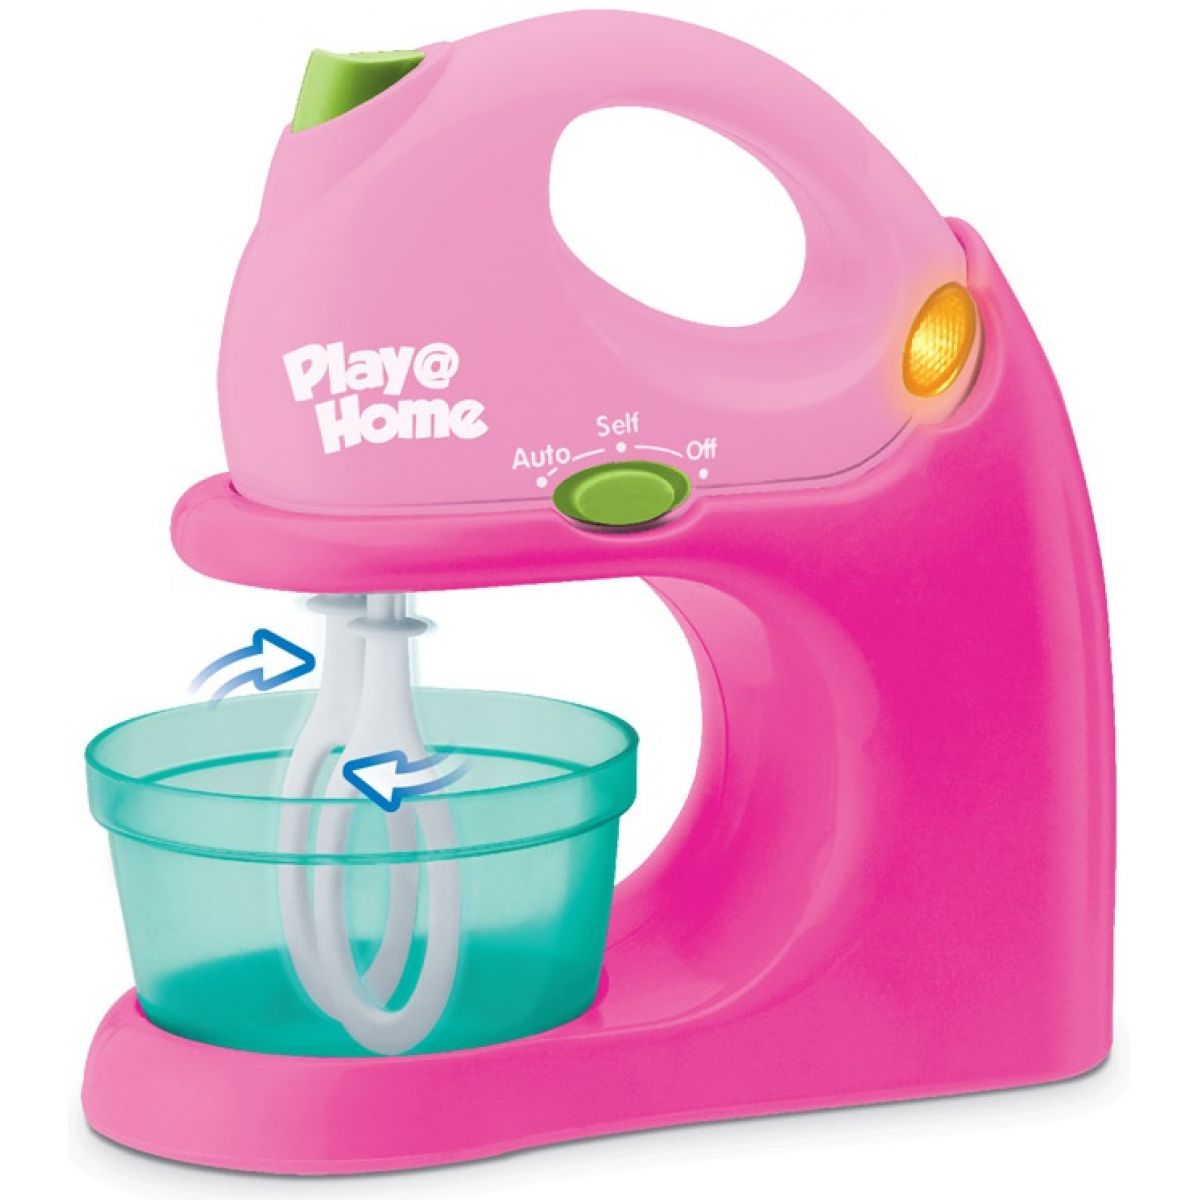 Keenway Play and Home Mixer